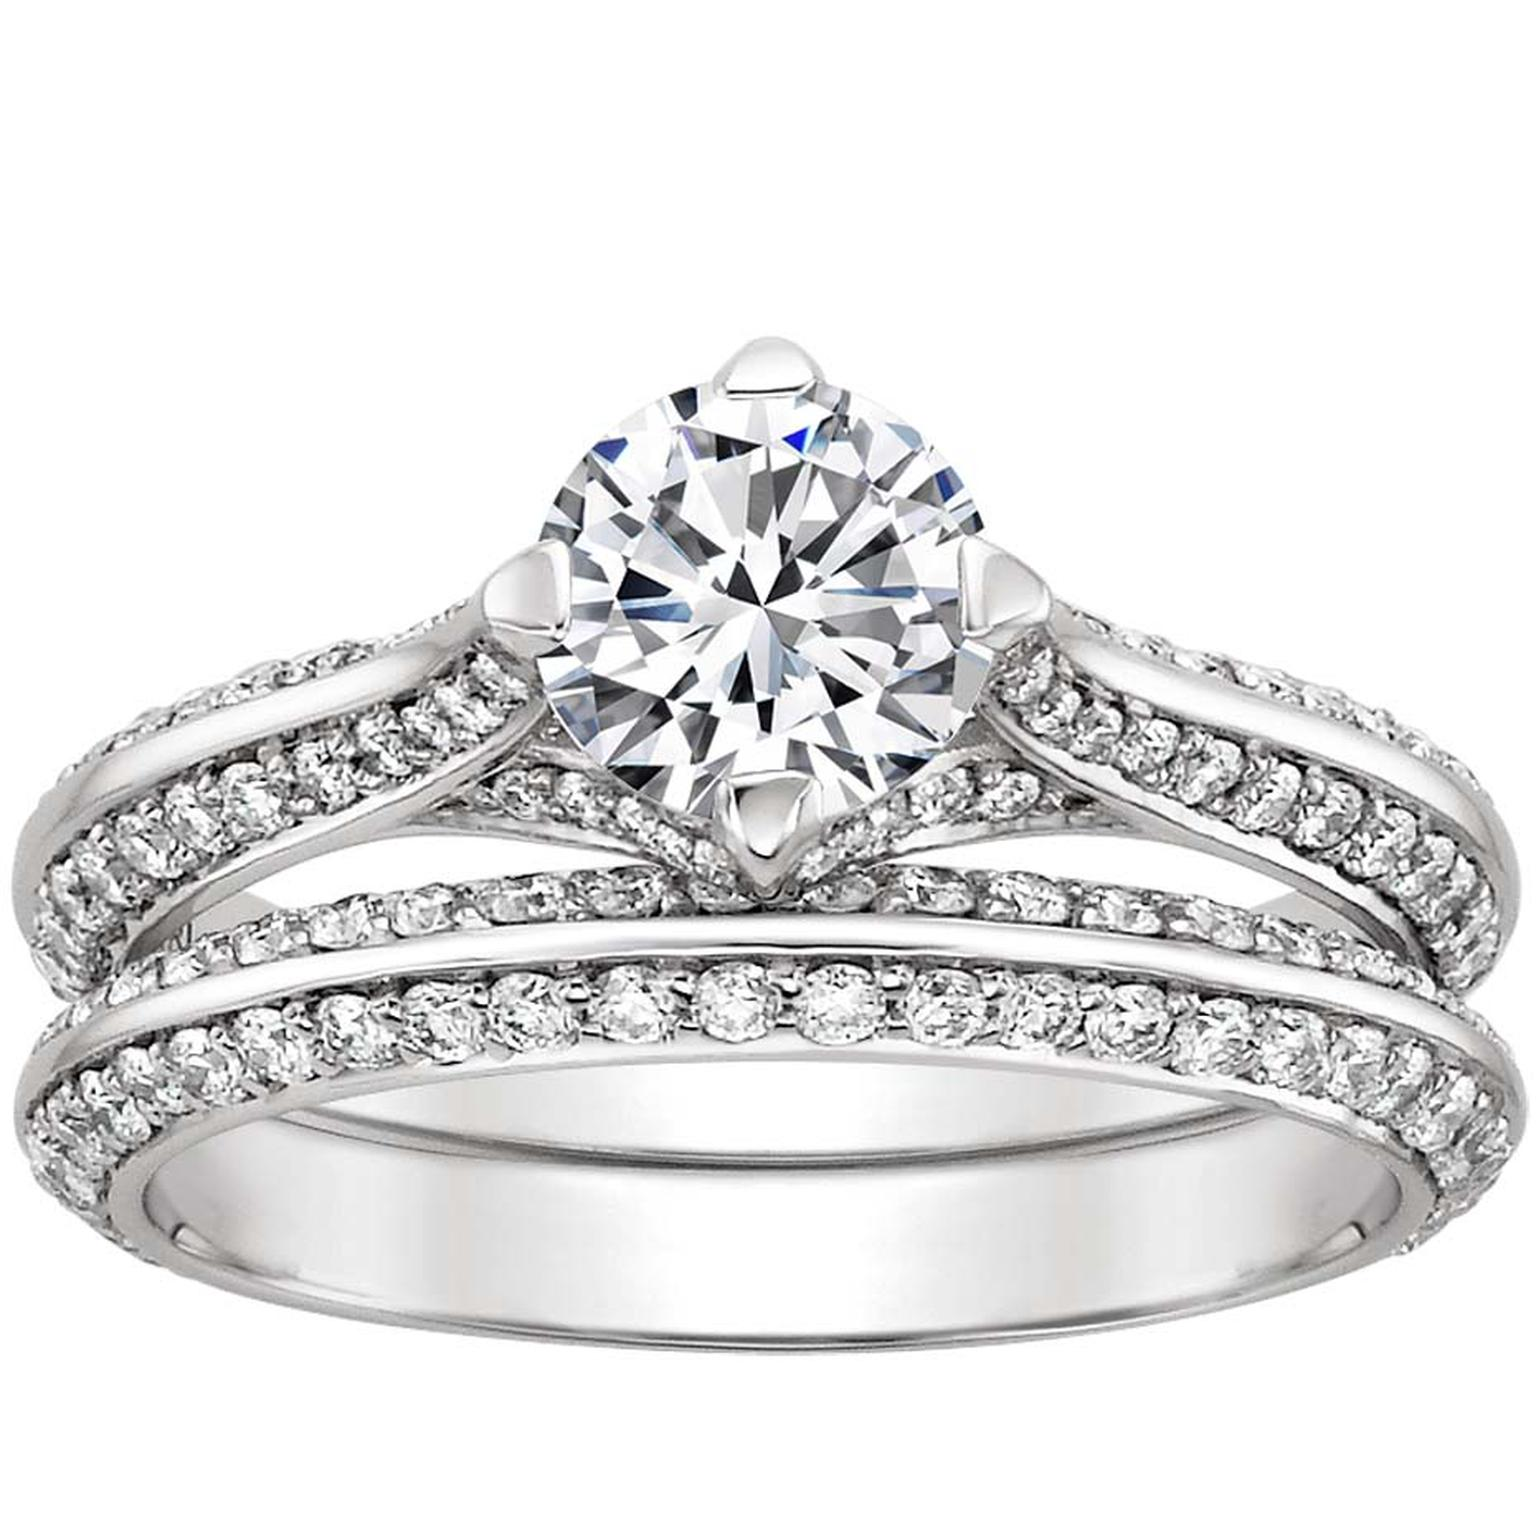 forever brilliant moissanite hexagon twig engagement ring ready to ship 5ct brilliant earth wedding bands Forever Brilliant Moissanite Hexagon Twig Engagement Ring Ready to Ship